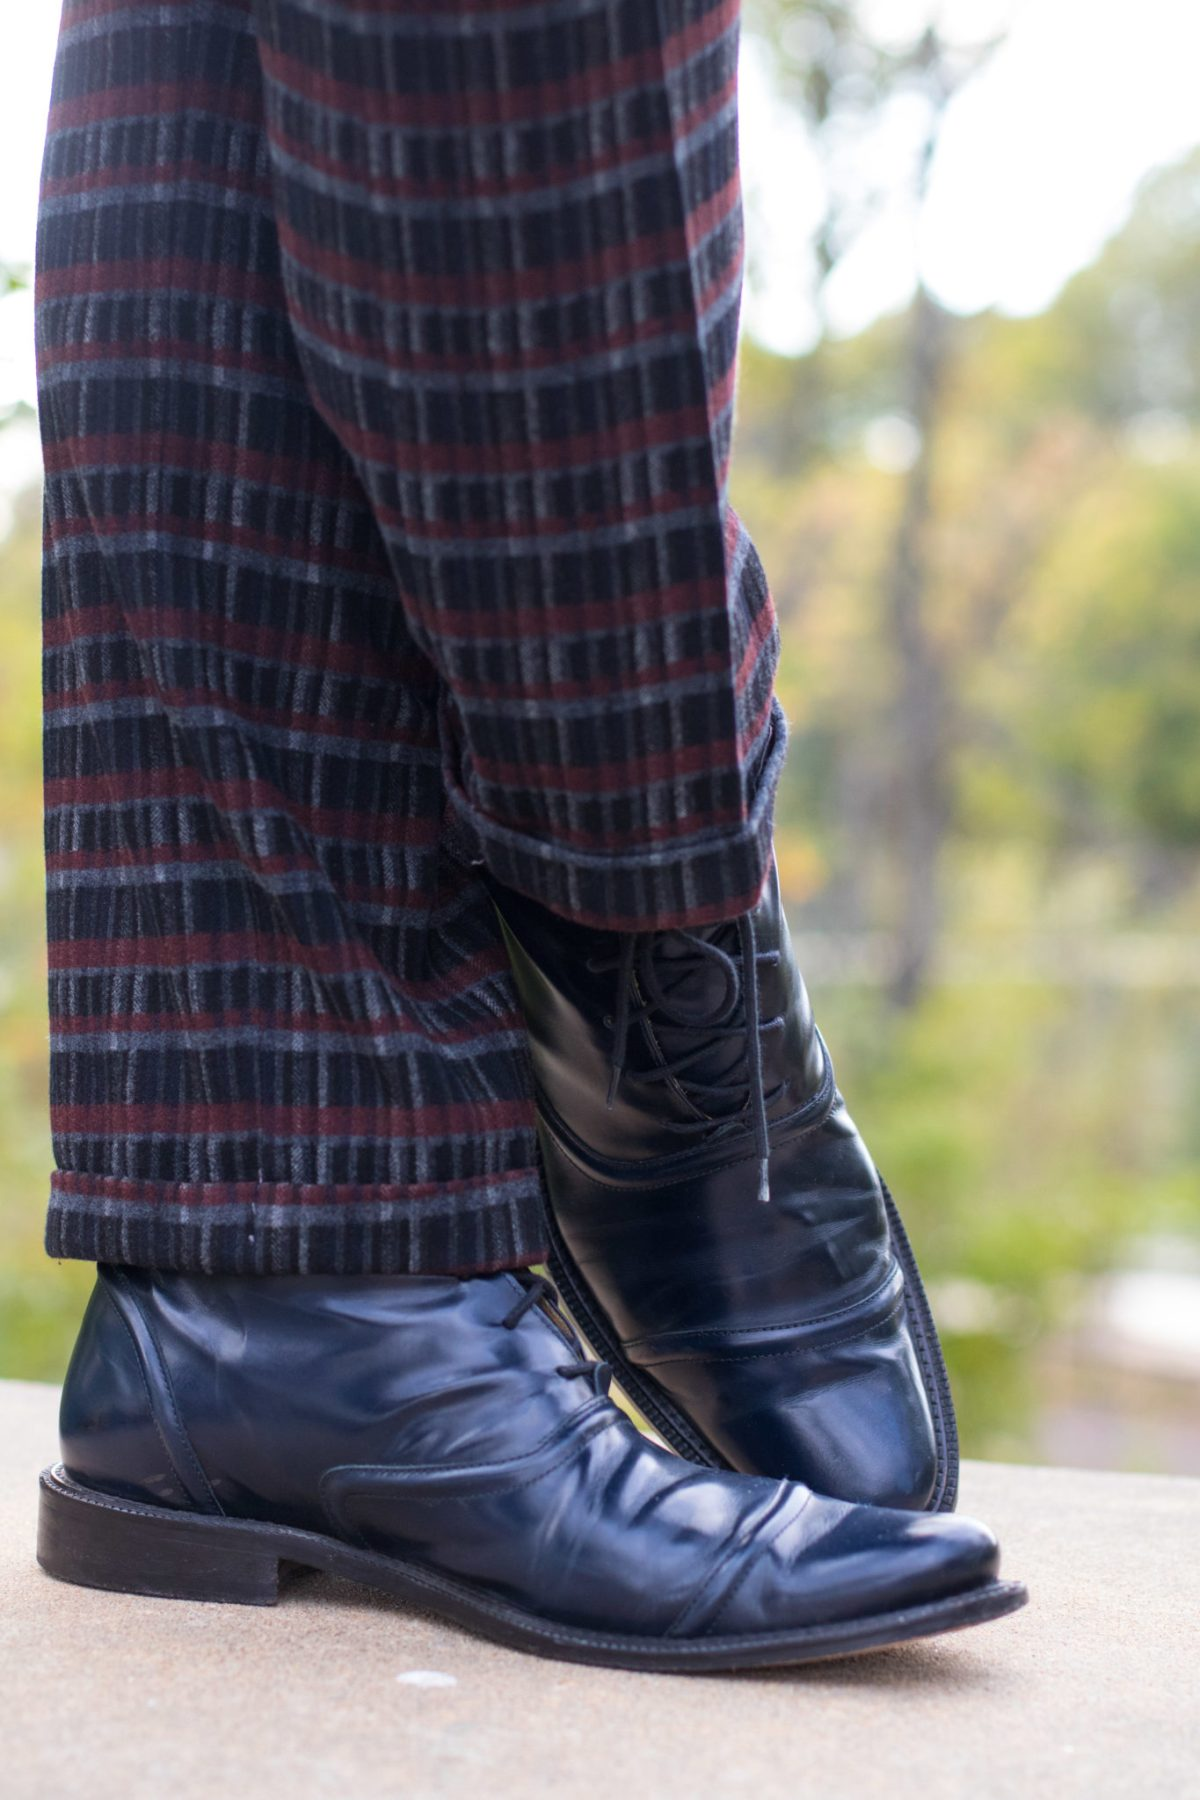 Fall trends for men - boots